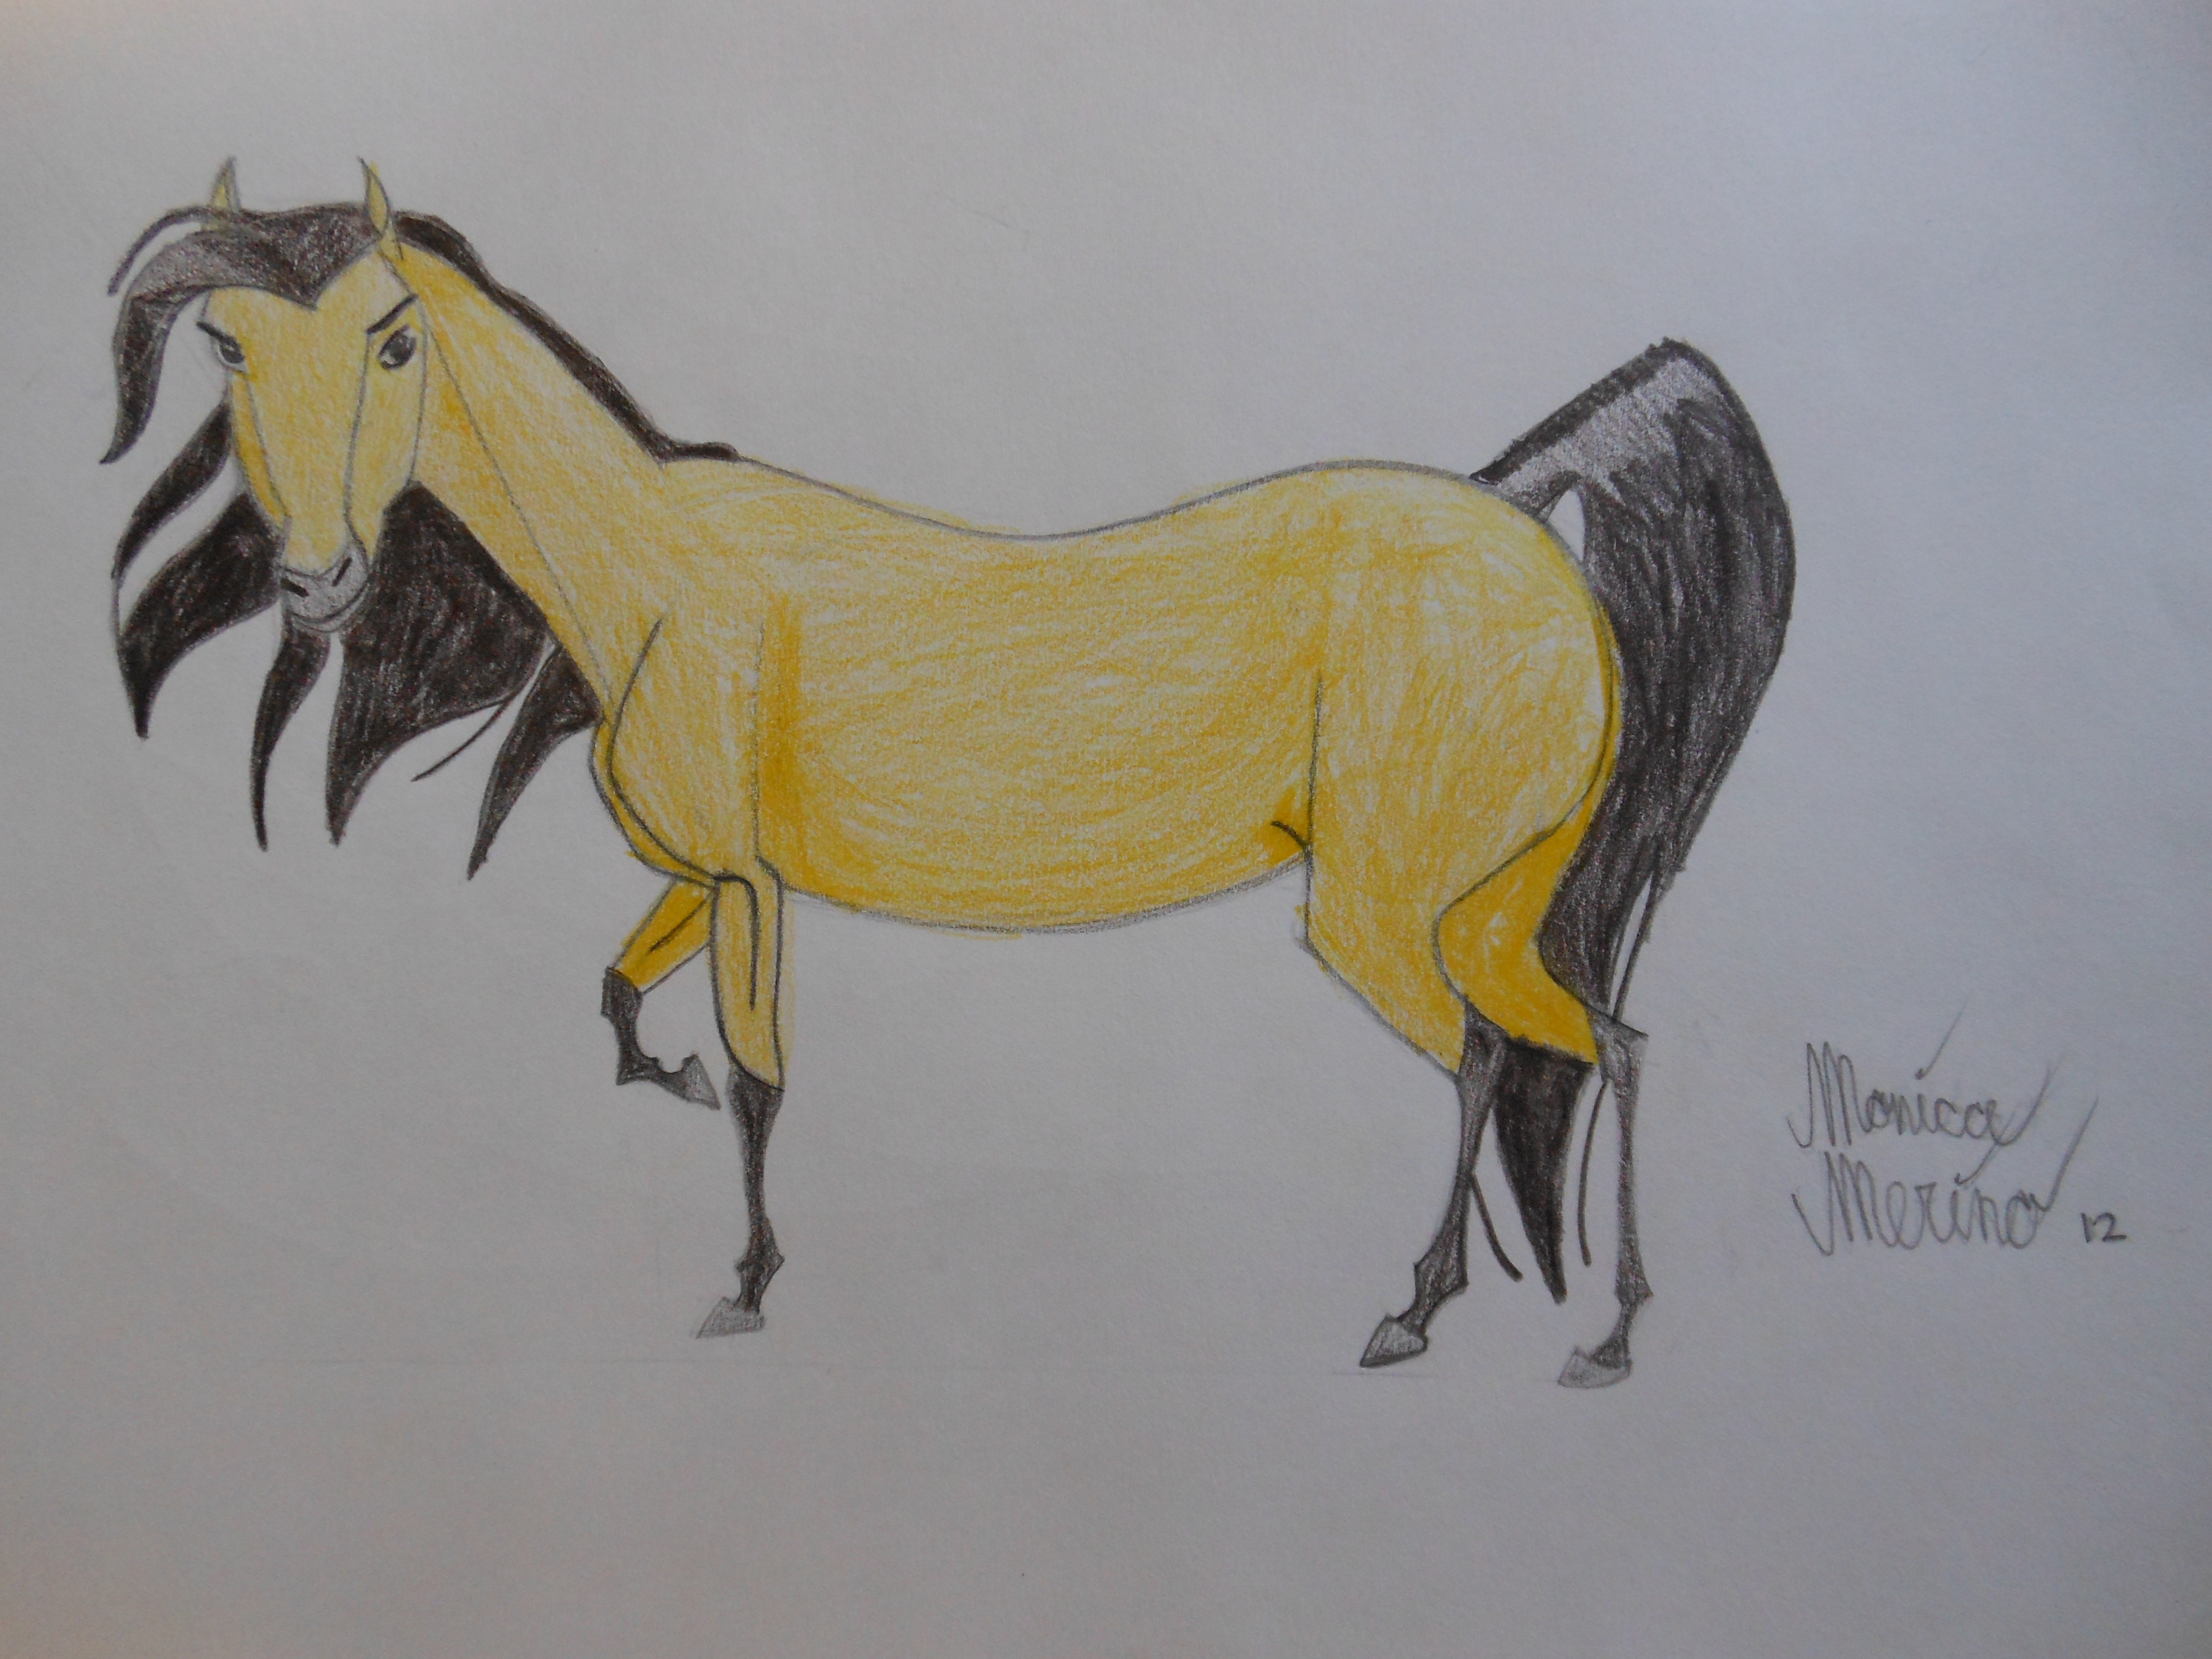 Spirit Der Wilde Mustang Bilder From How To Draw With James Logo Drawings Images Baxter Hd Wallpaper And Background Photos